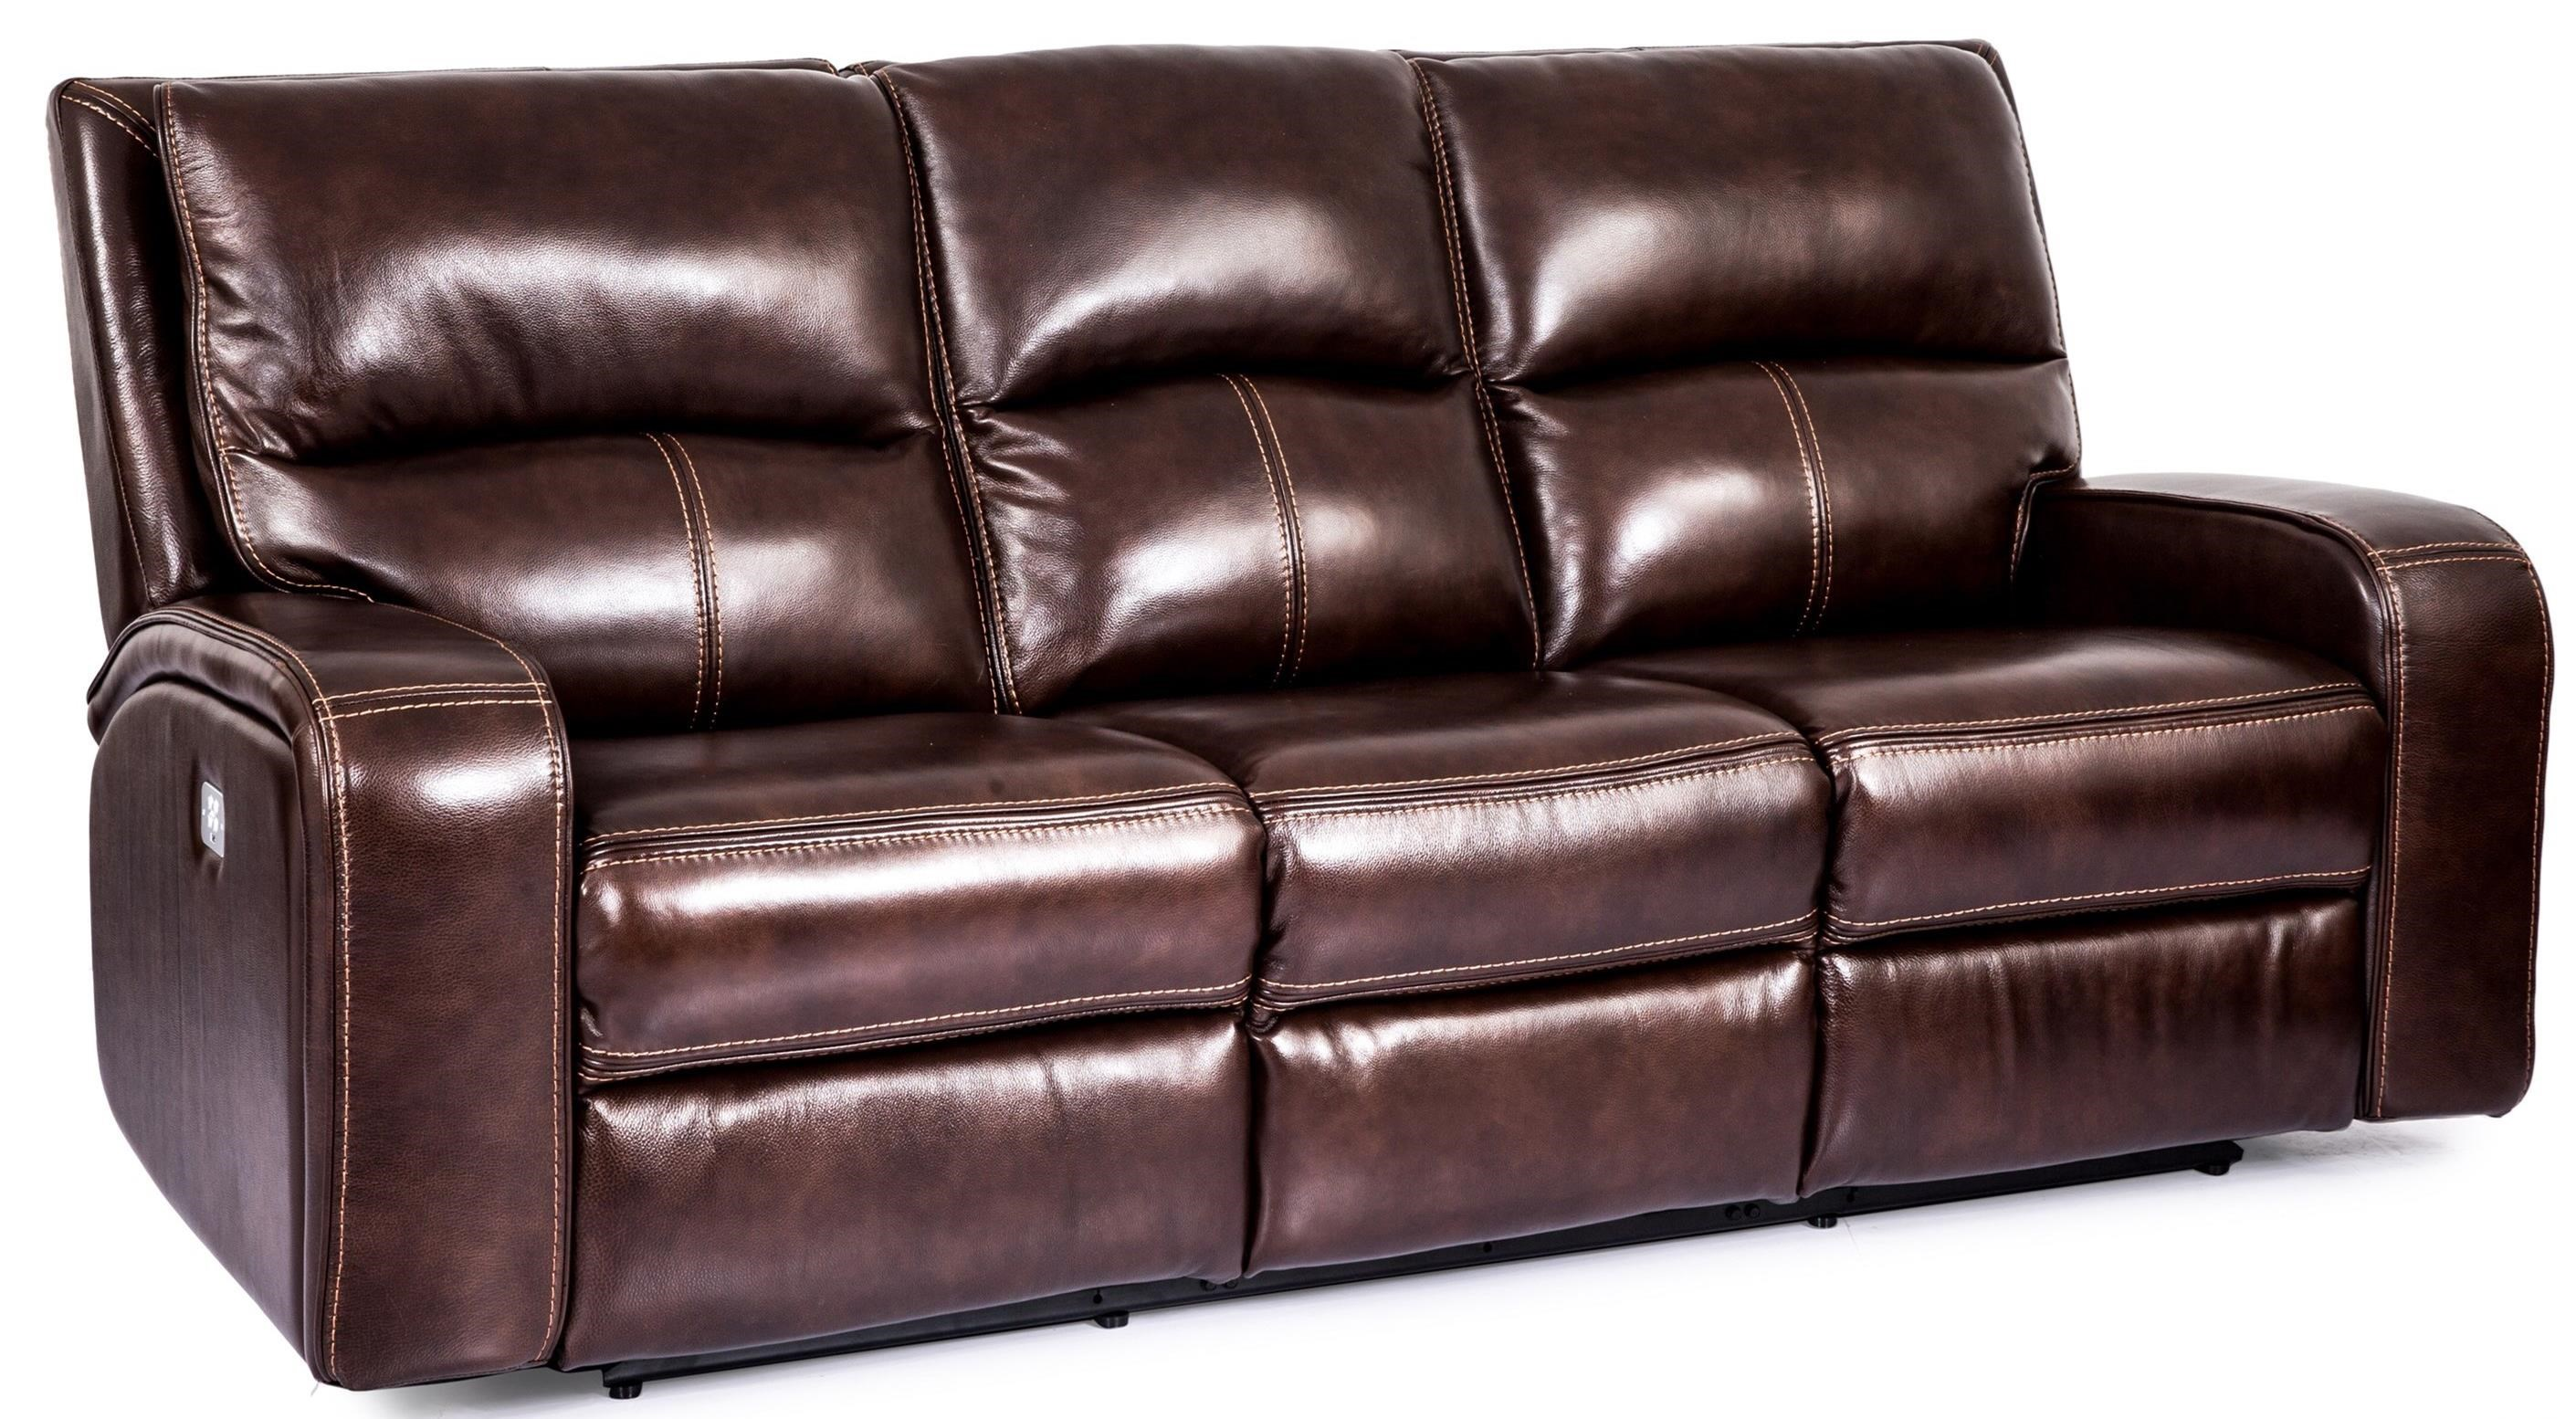 5168HM Power Reclining Sofa by Cheers at Beck's Furniture